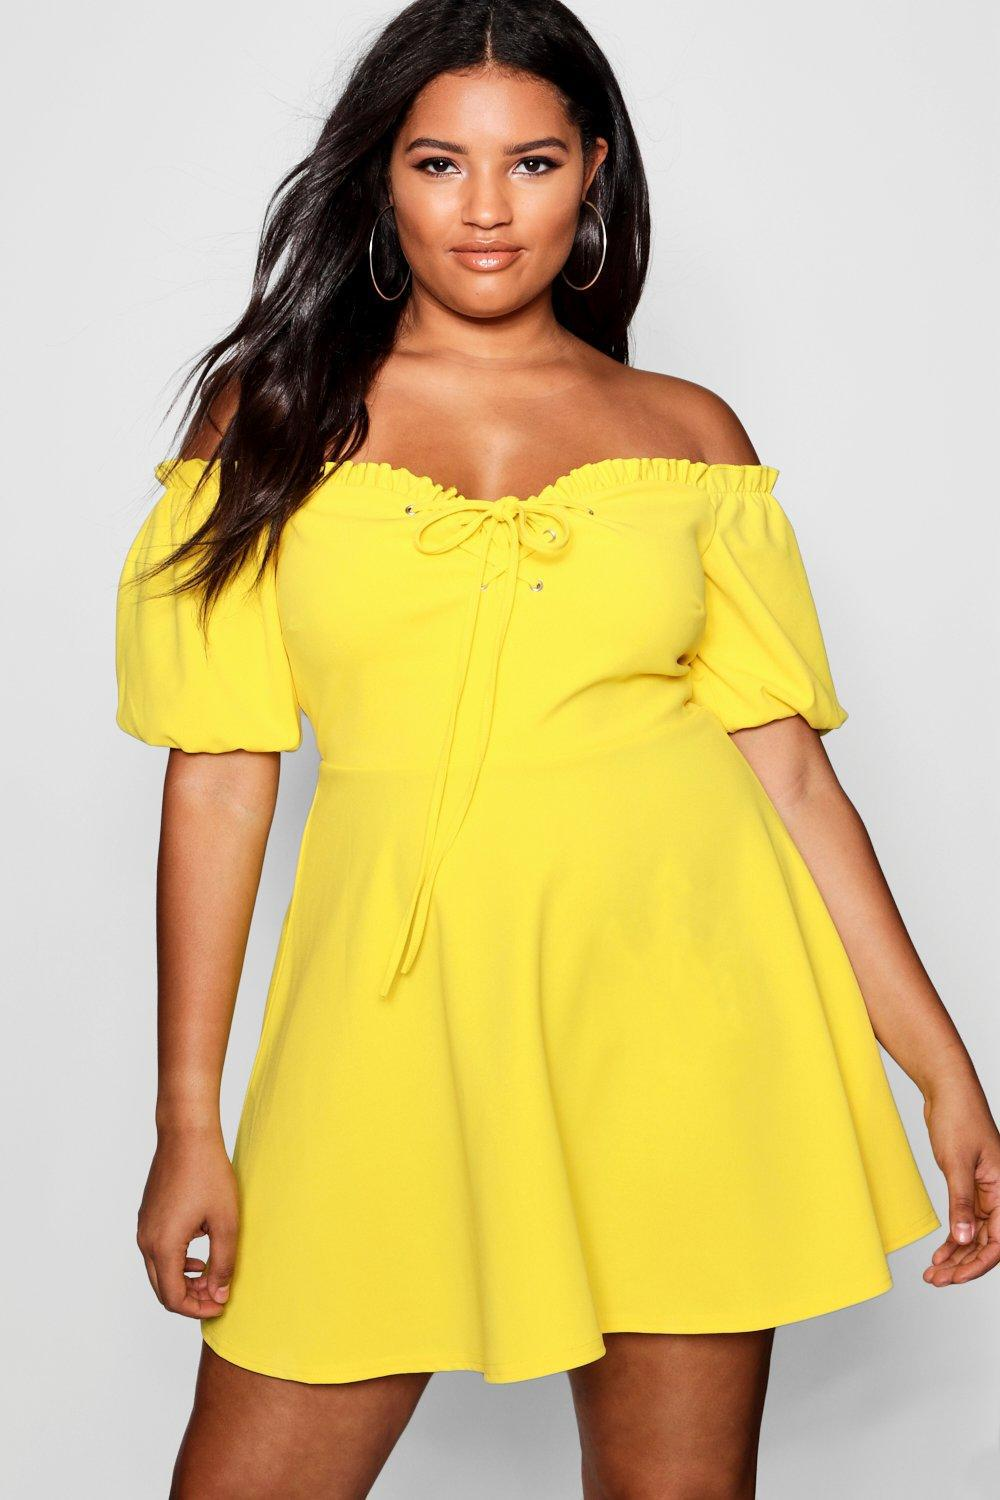 Boohoo Lace Up Front Puff Sleeve Skater Dress Factory Outlet For Sale 2018 Unisex ZG2snvfeXD